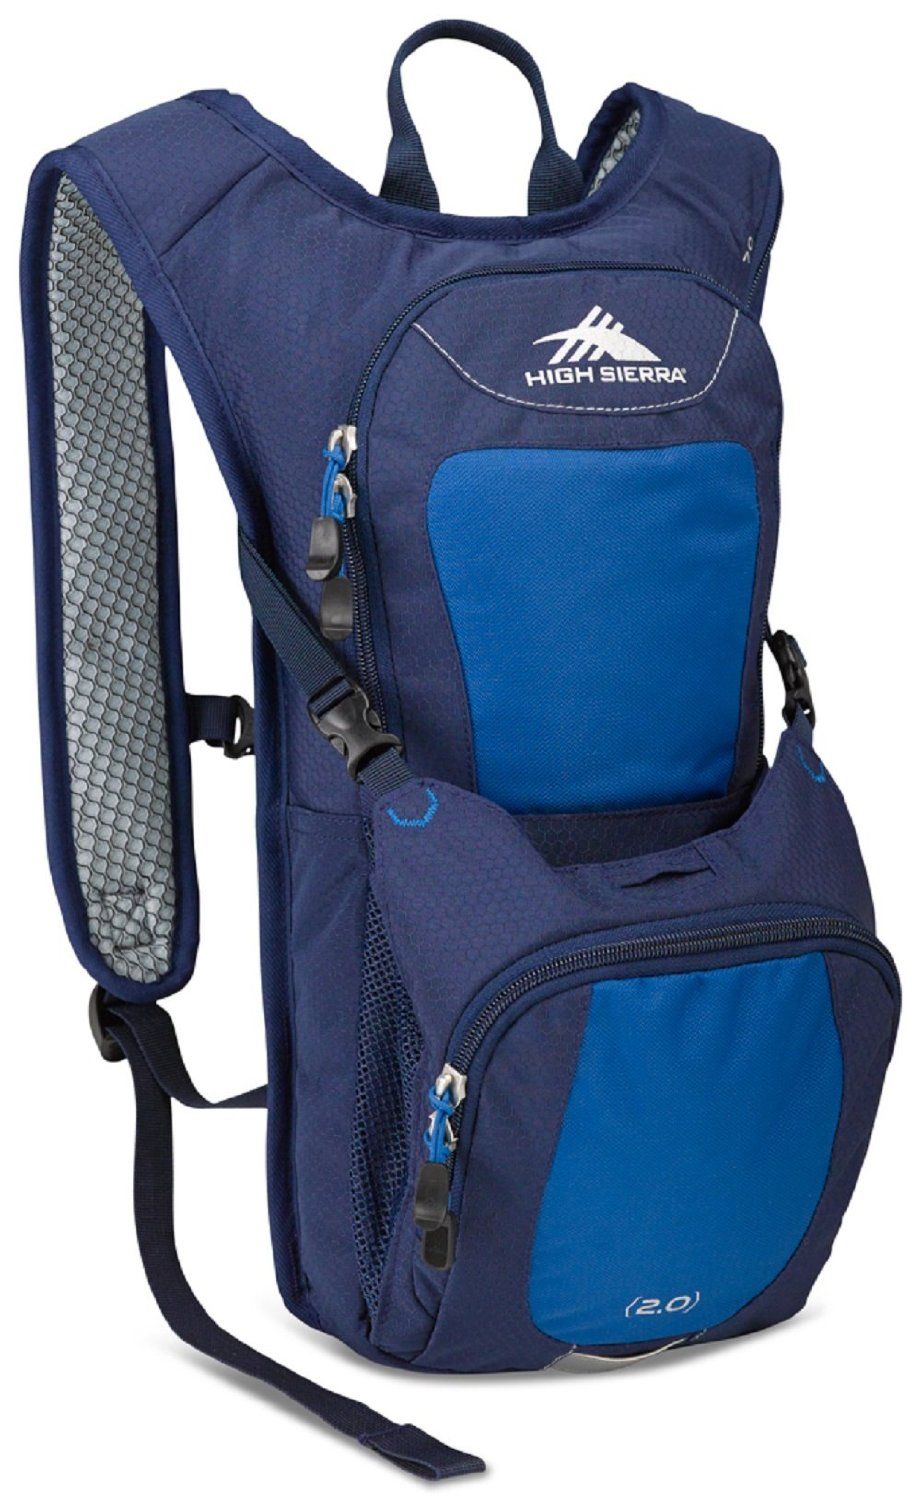 High Sierra Classic 2 Series Quickshot 70 Hydration Pack